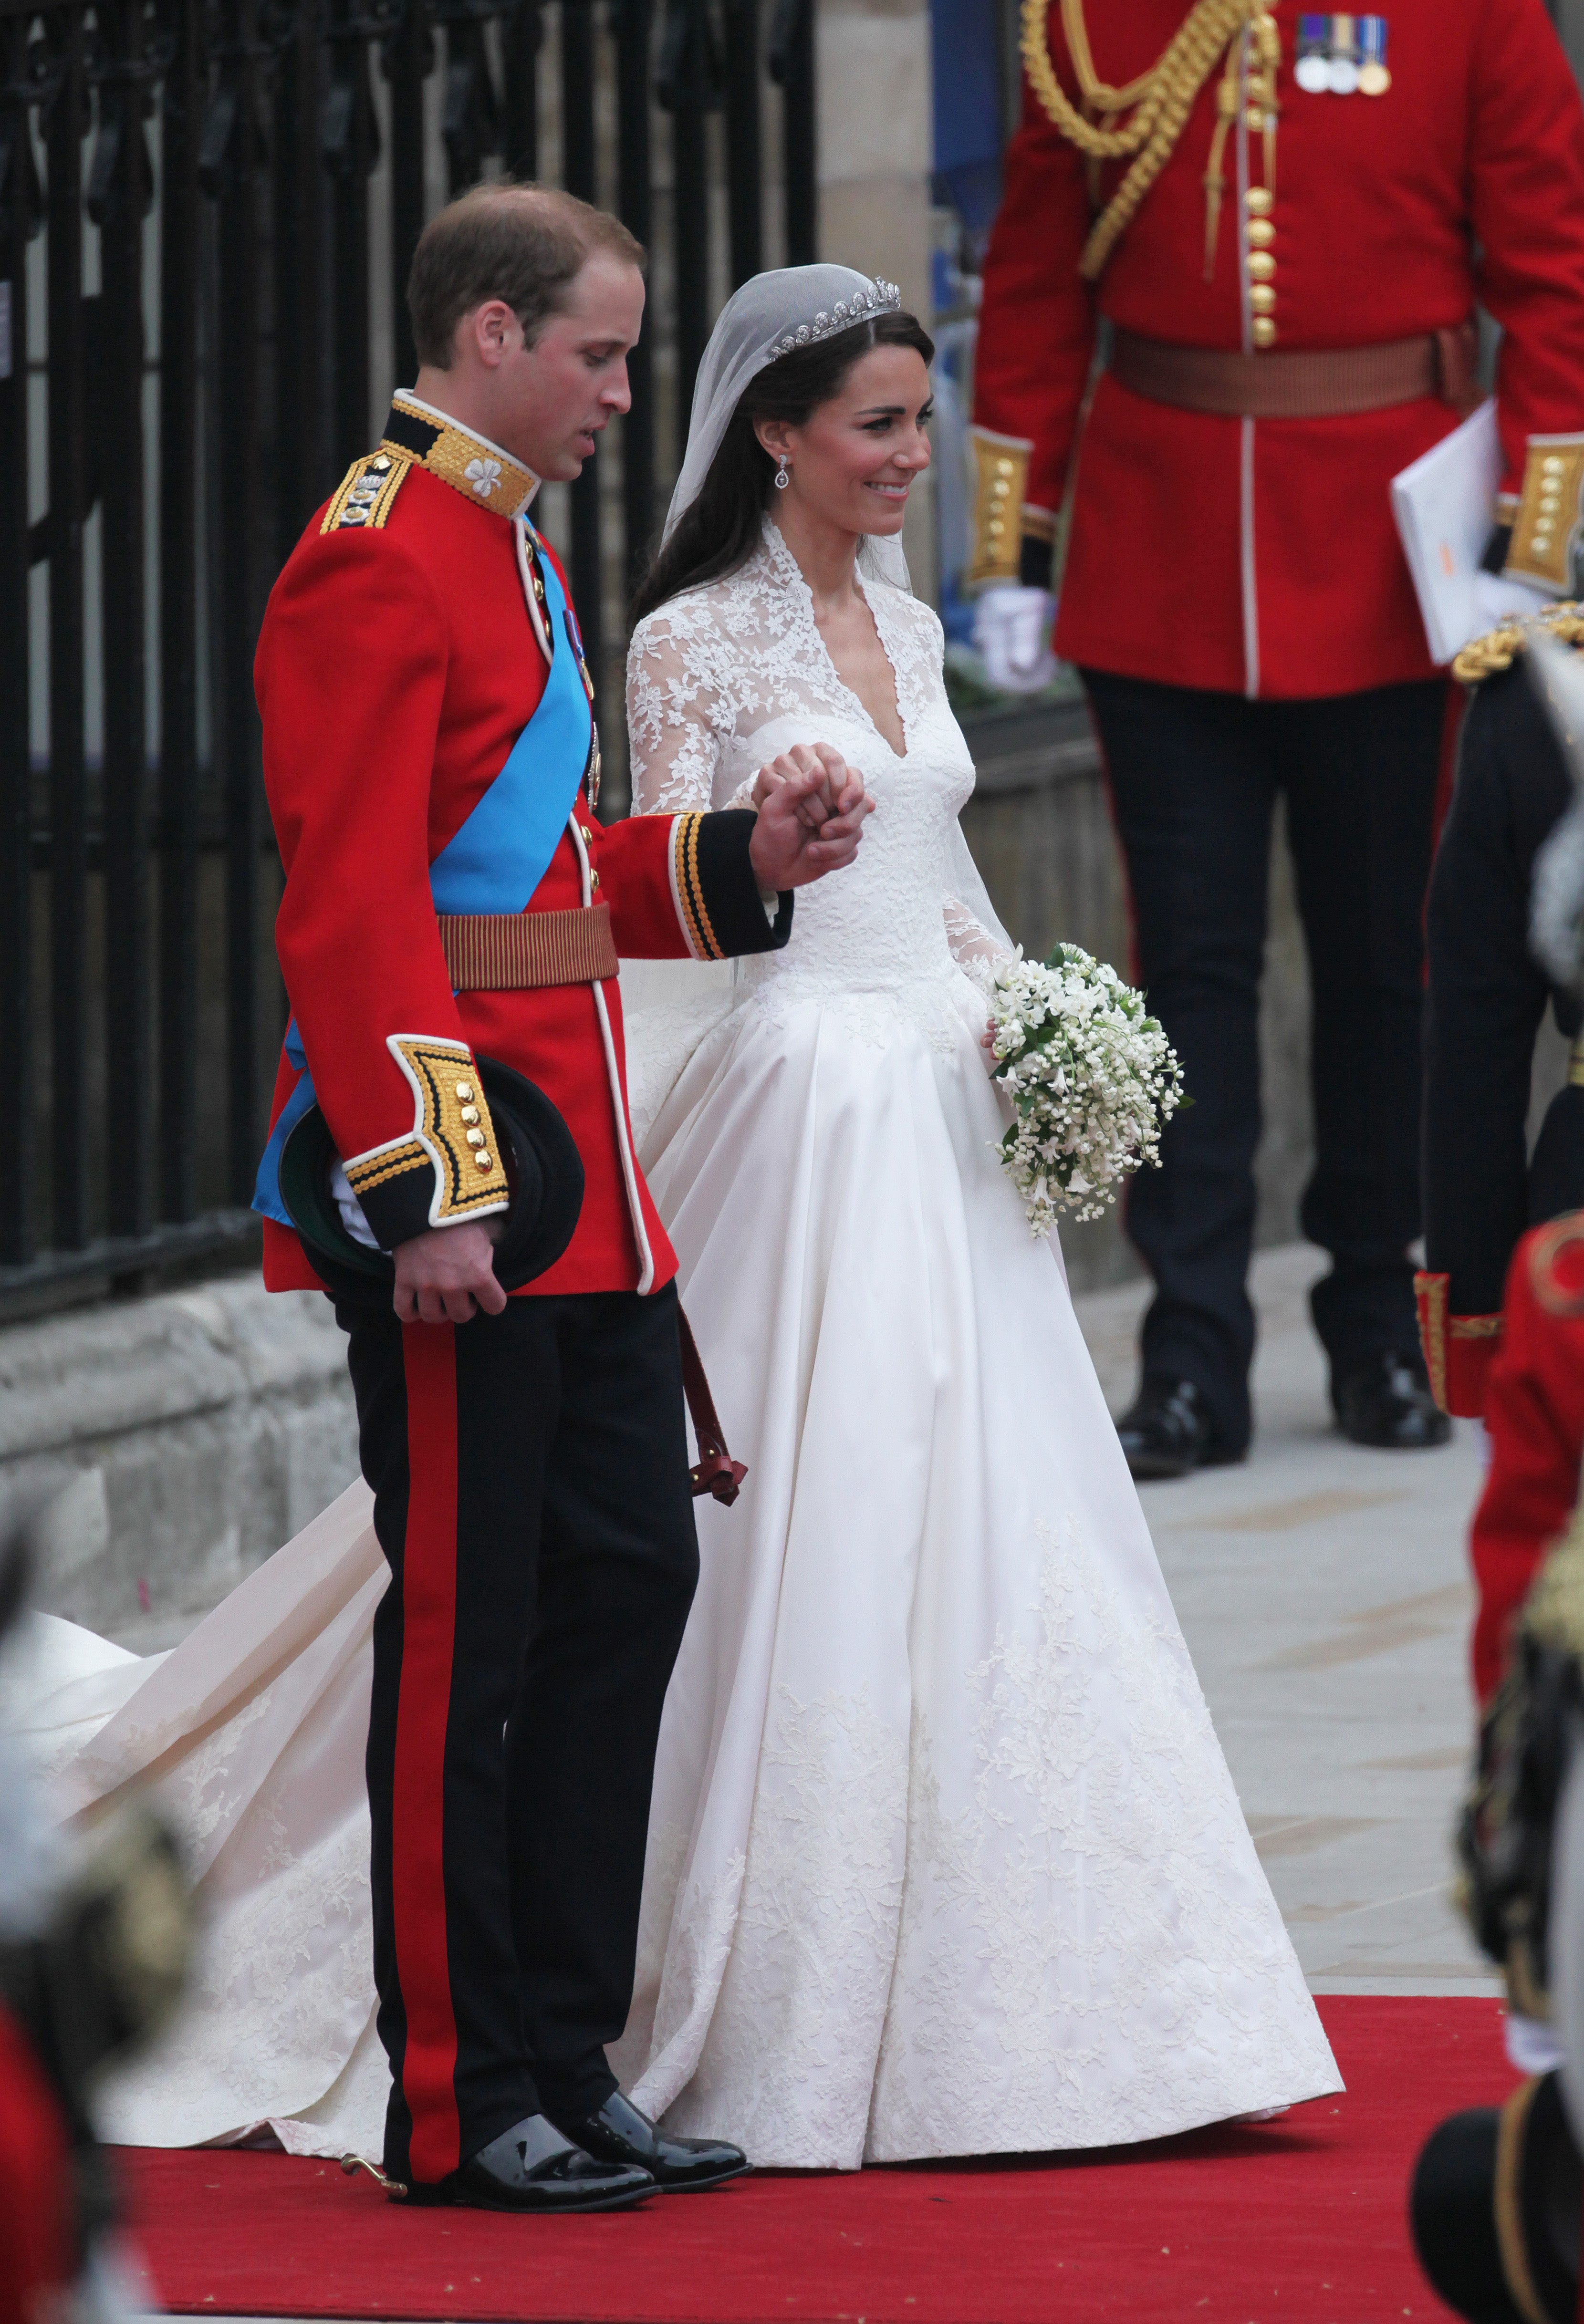 Kate Middleton's lace dress was designed by Sarah Burton for Alexander McQueen.